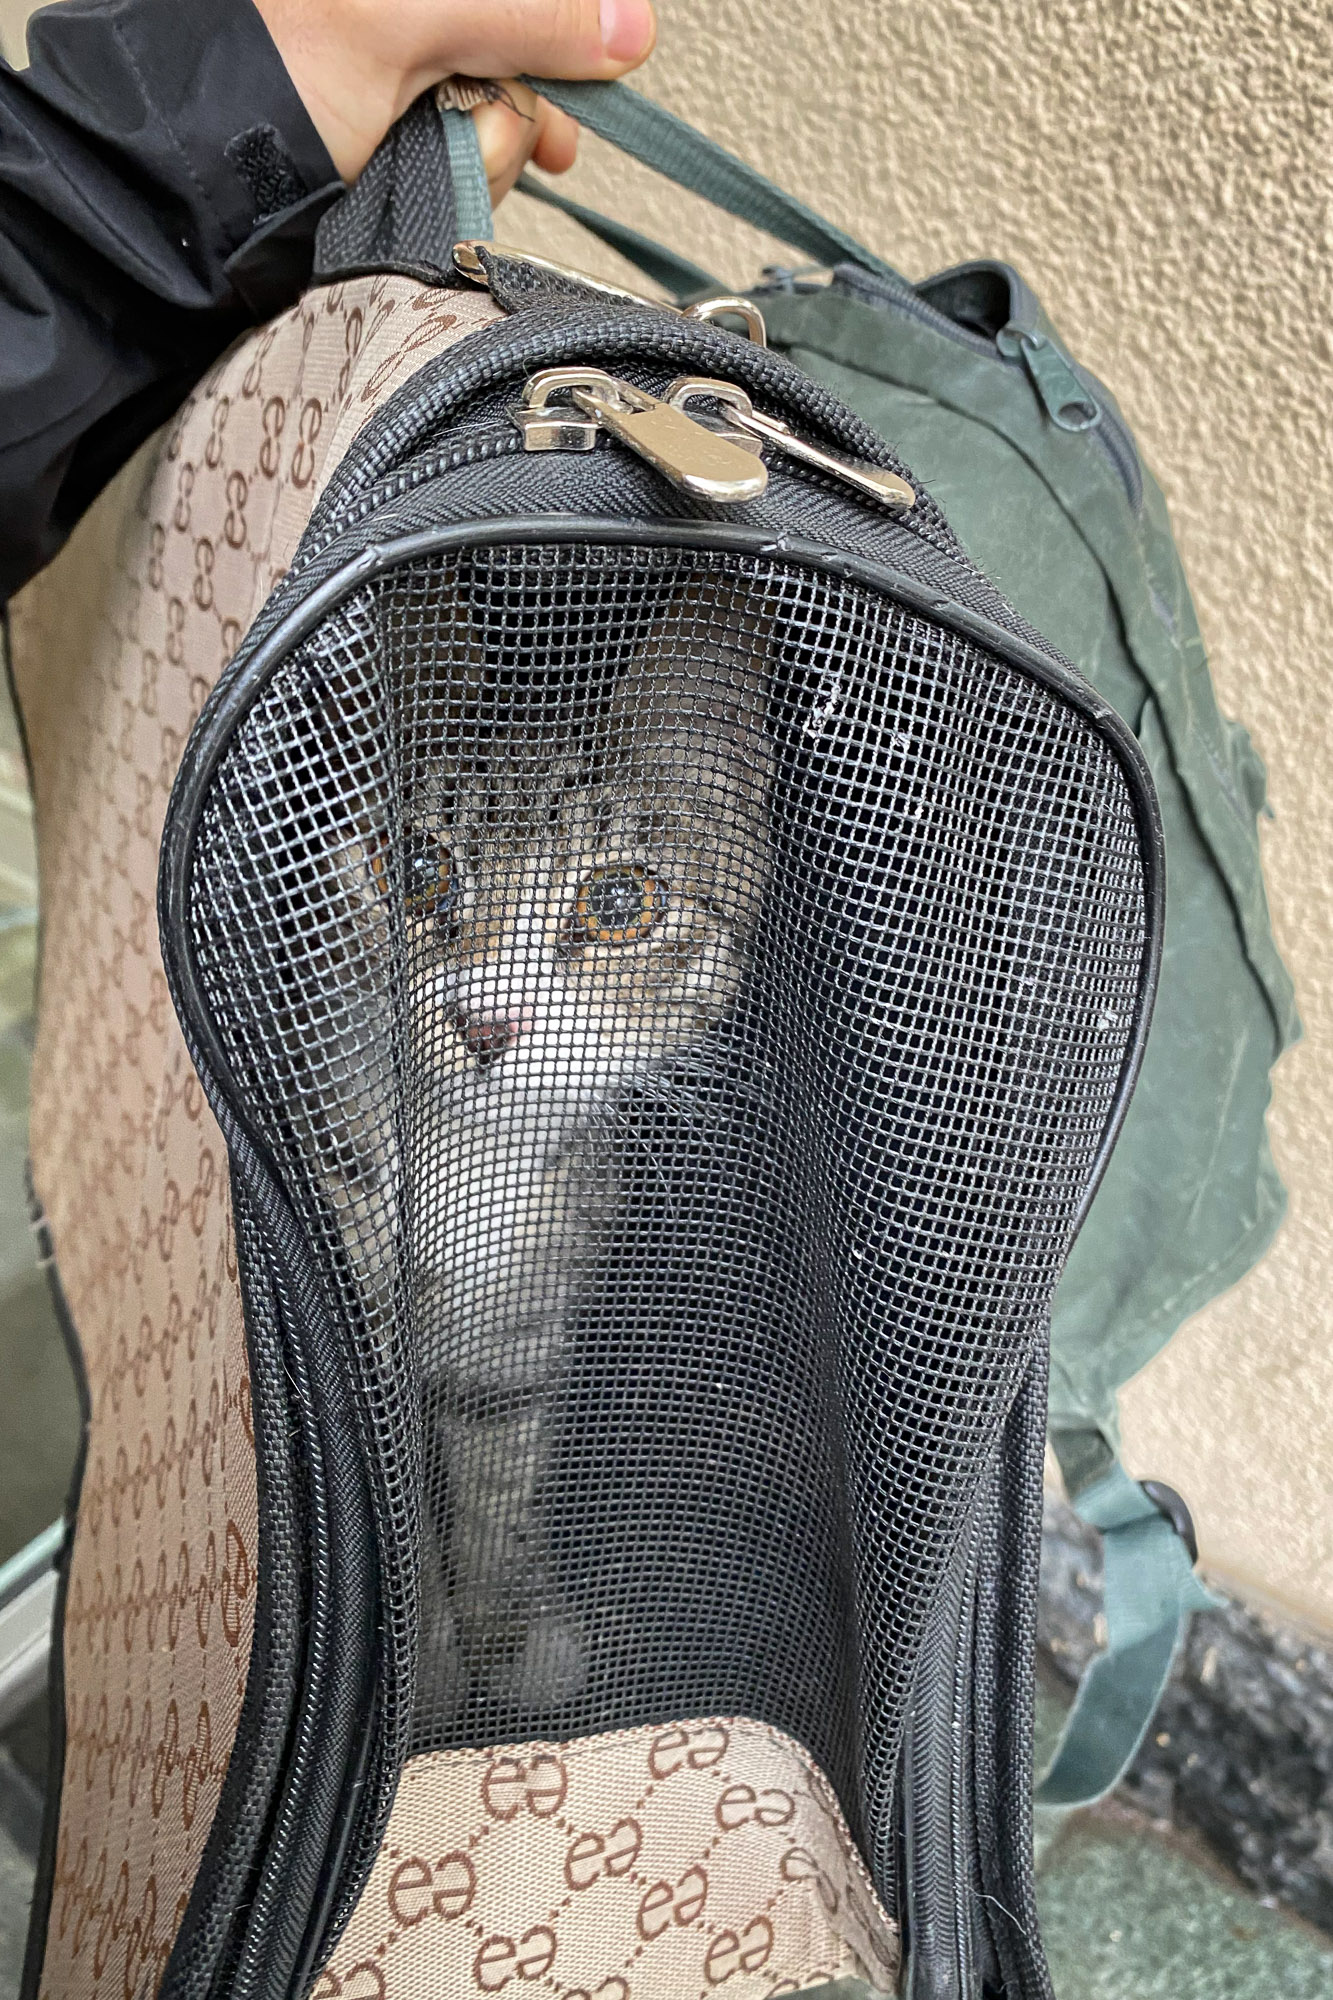 Misha, a cat from Tbilisi, does not like being arrested